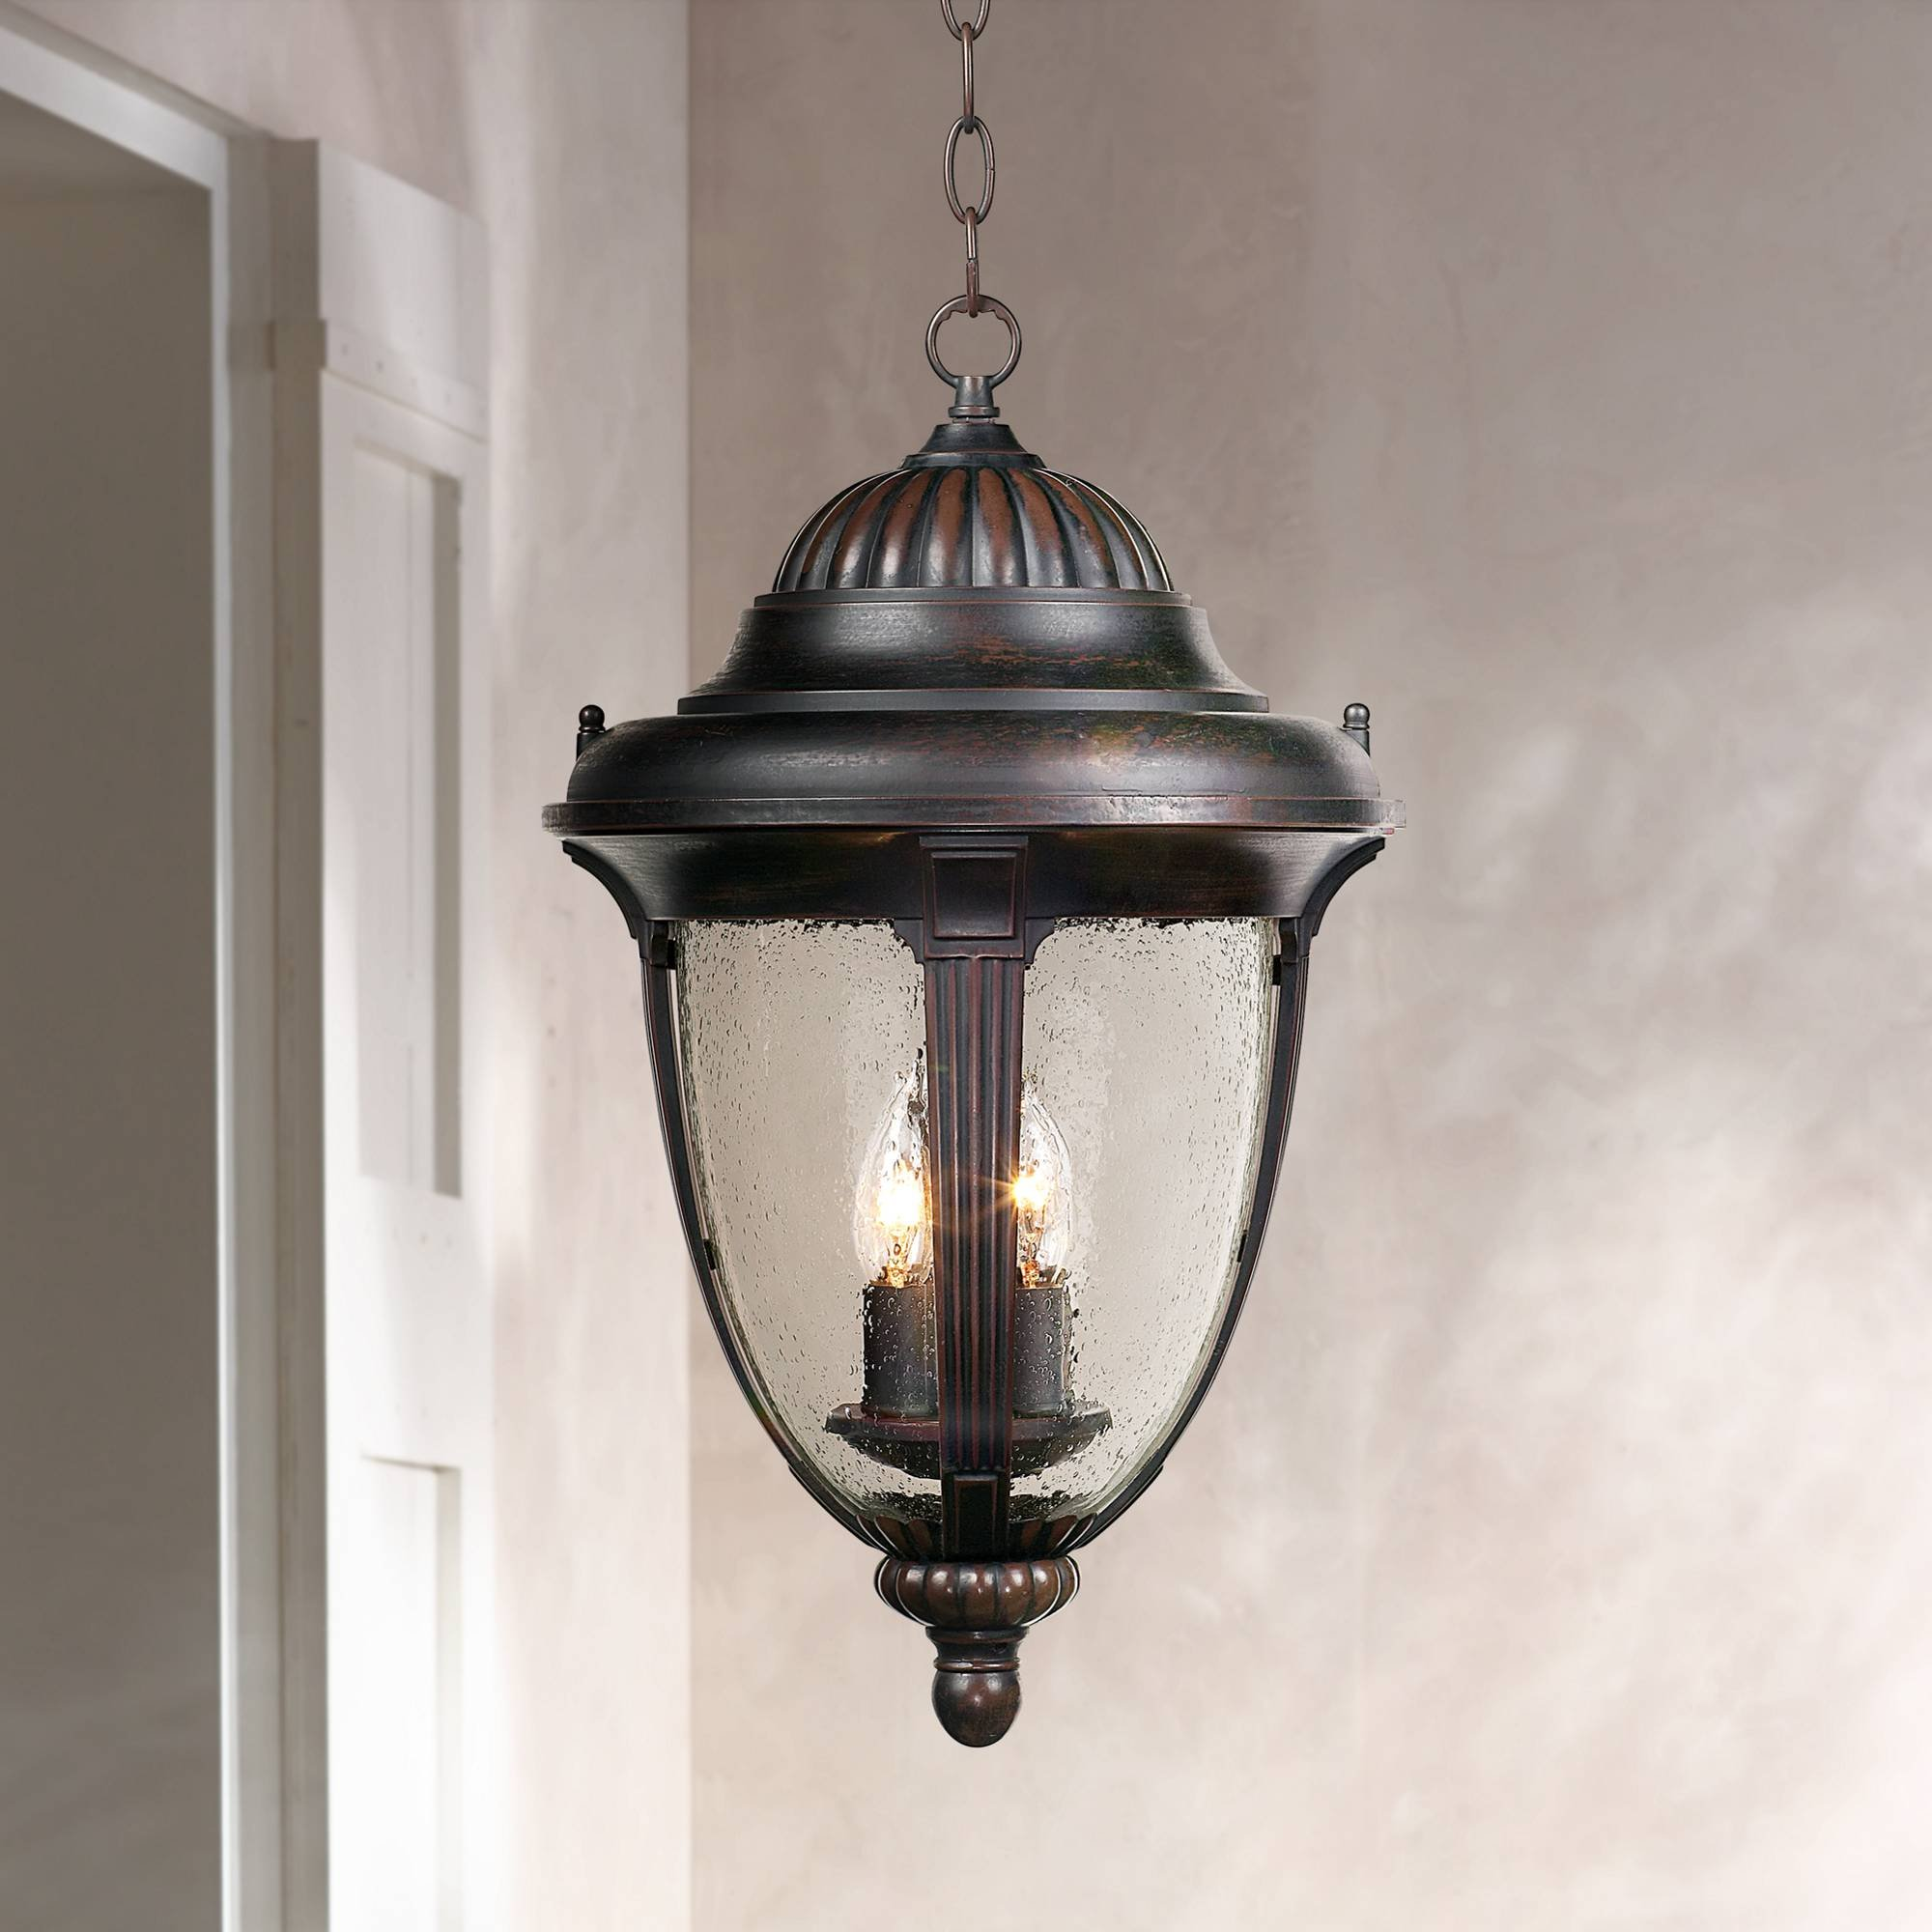 Casa Sierra Traditional Outdoor Ceiling Light Hanging Lantern Bronze 20 1/2'' Seedy Glass Damp Rated for Exterior Porch Patio - John Timberland